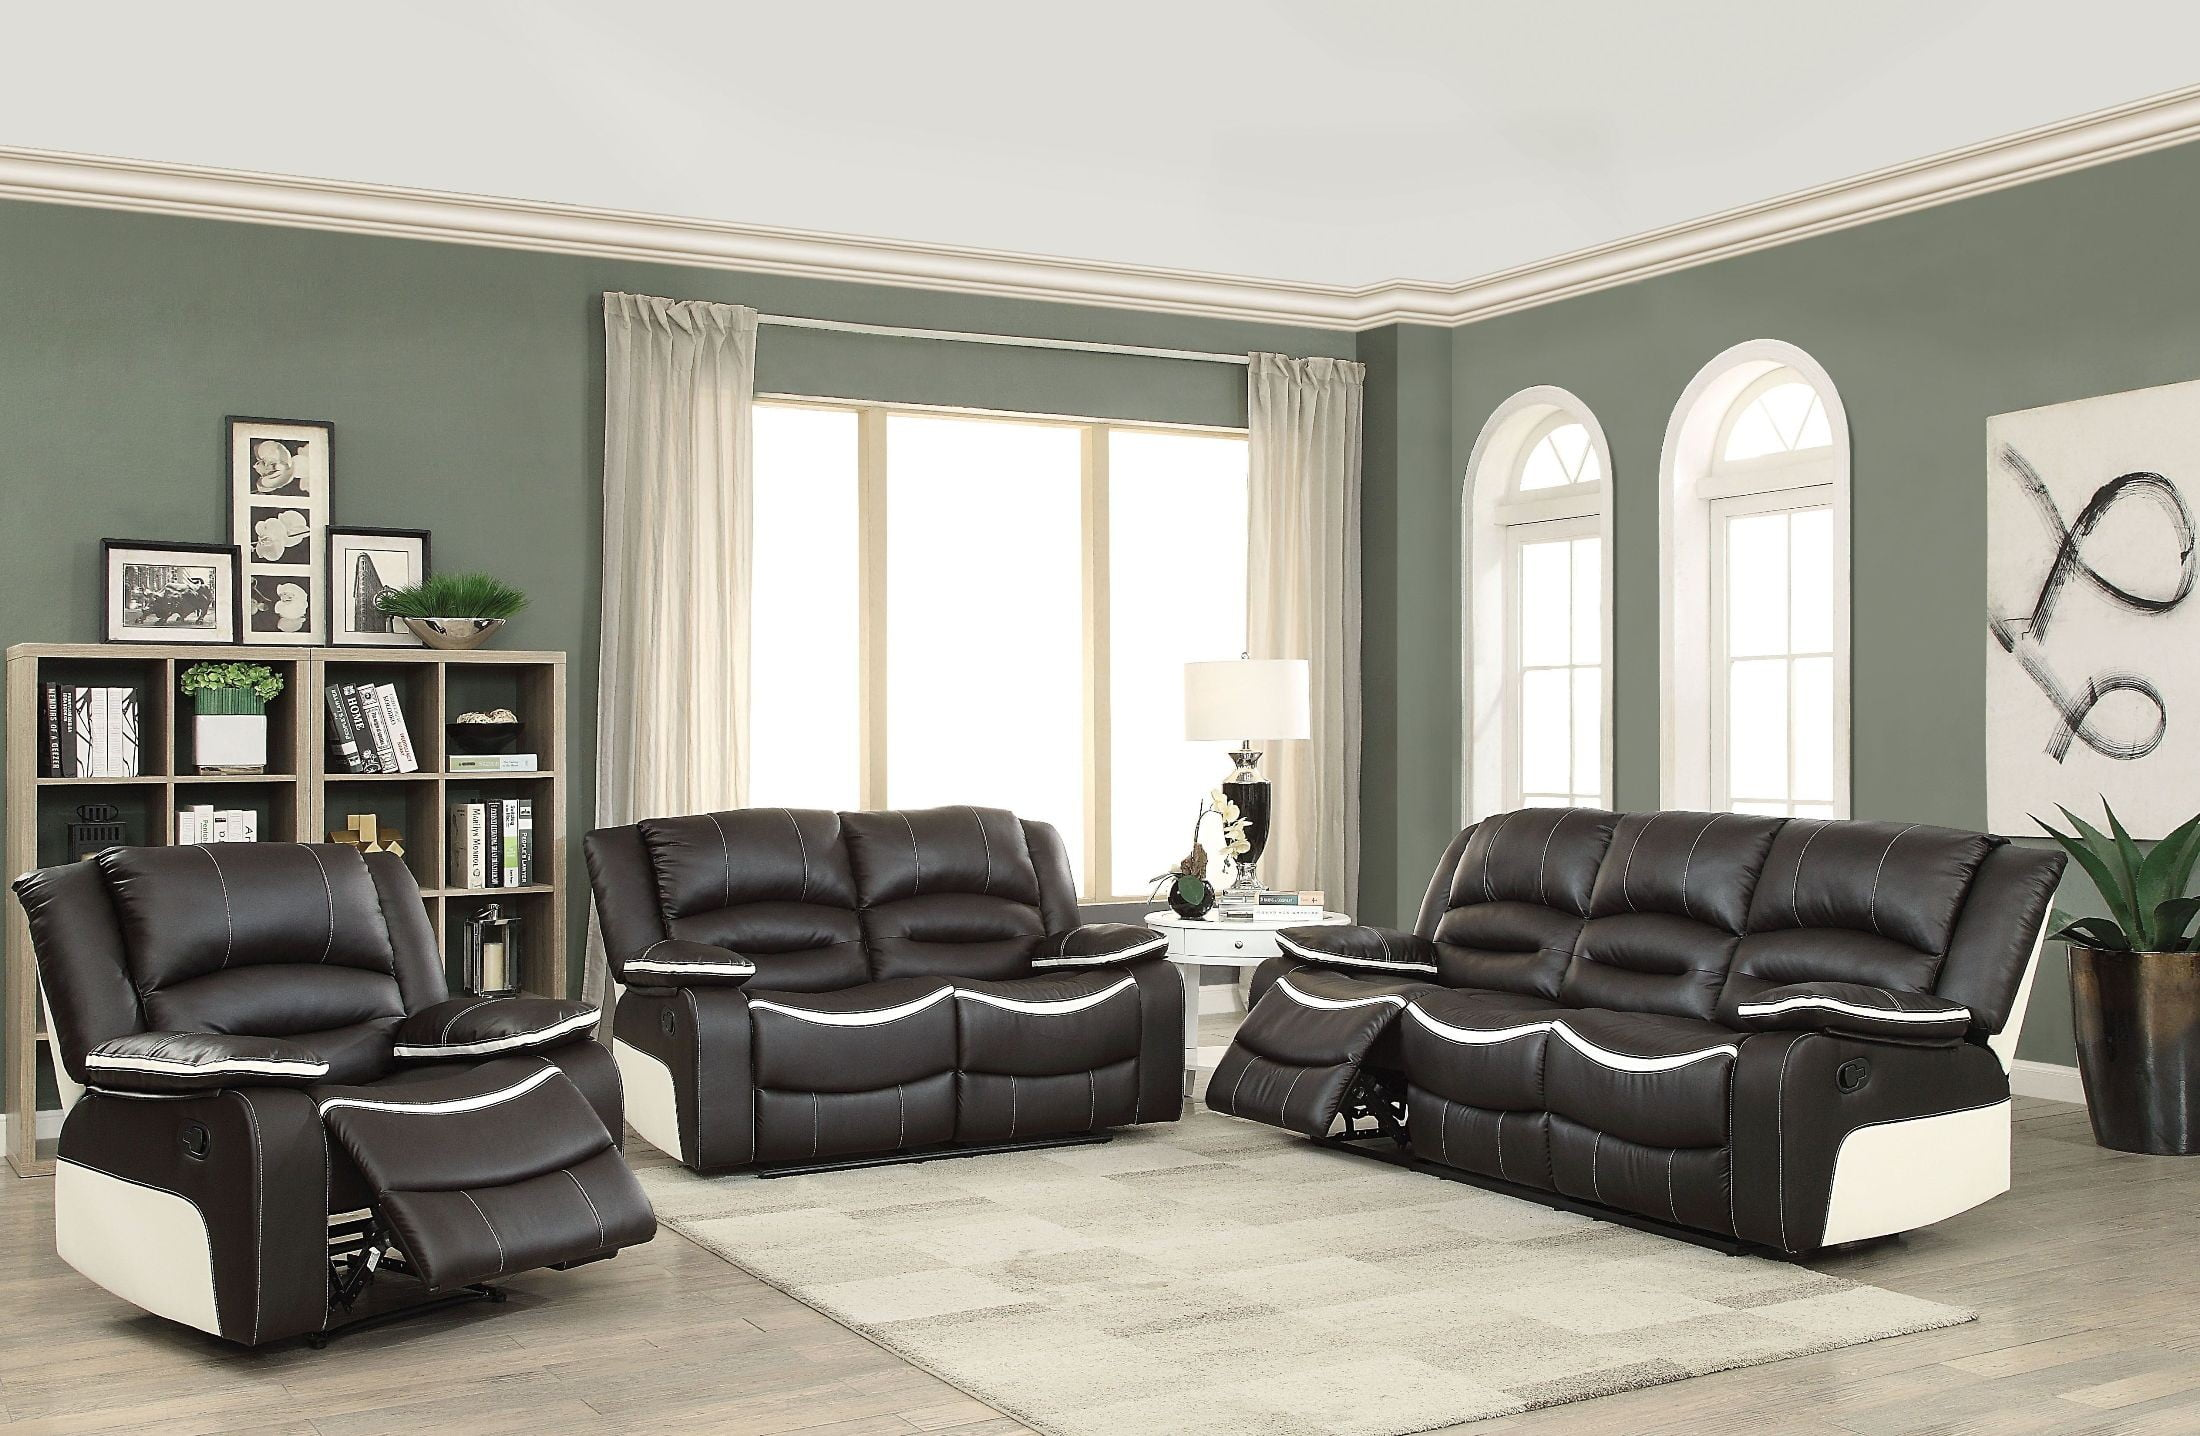 Broderick Ebony and Cream Reclining Living Room Set from Acme ...